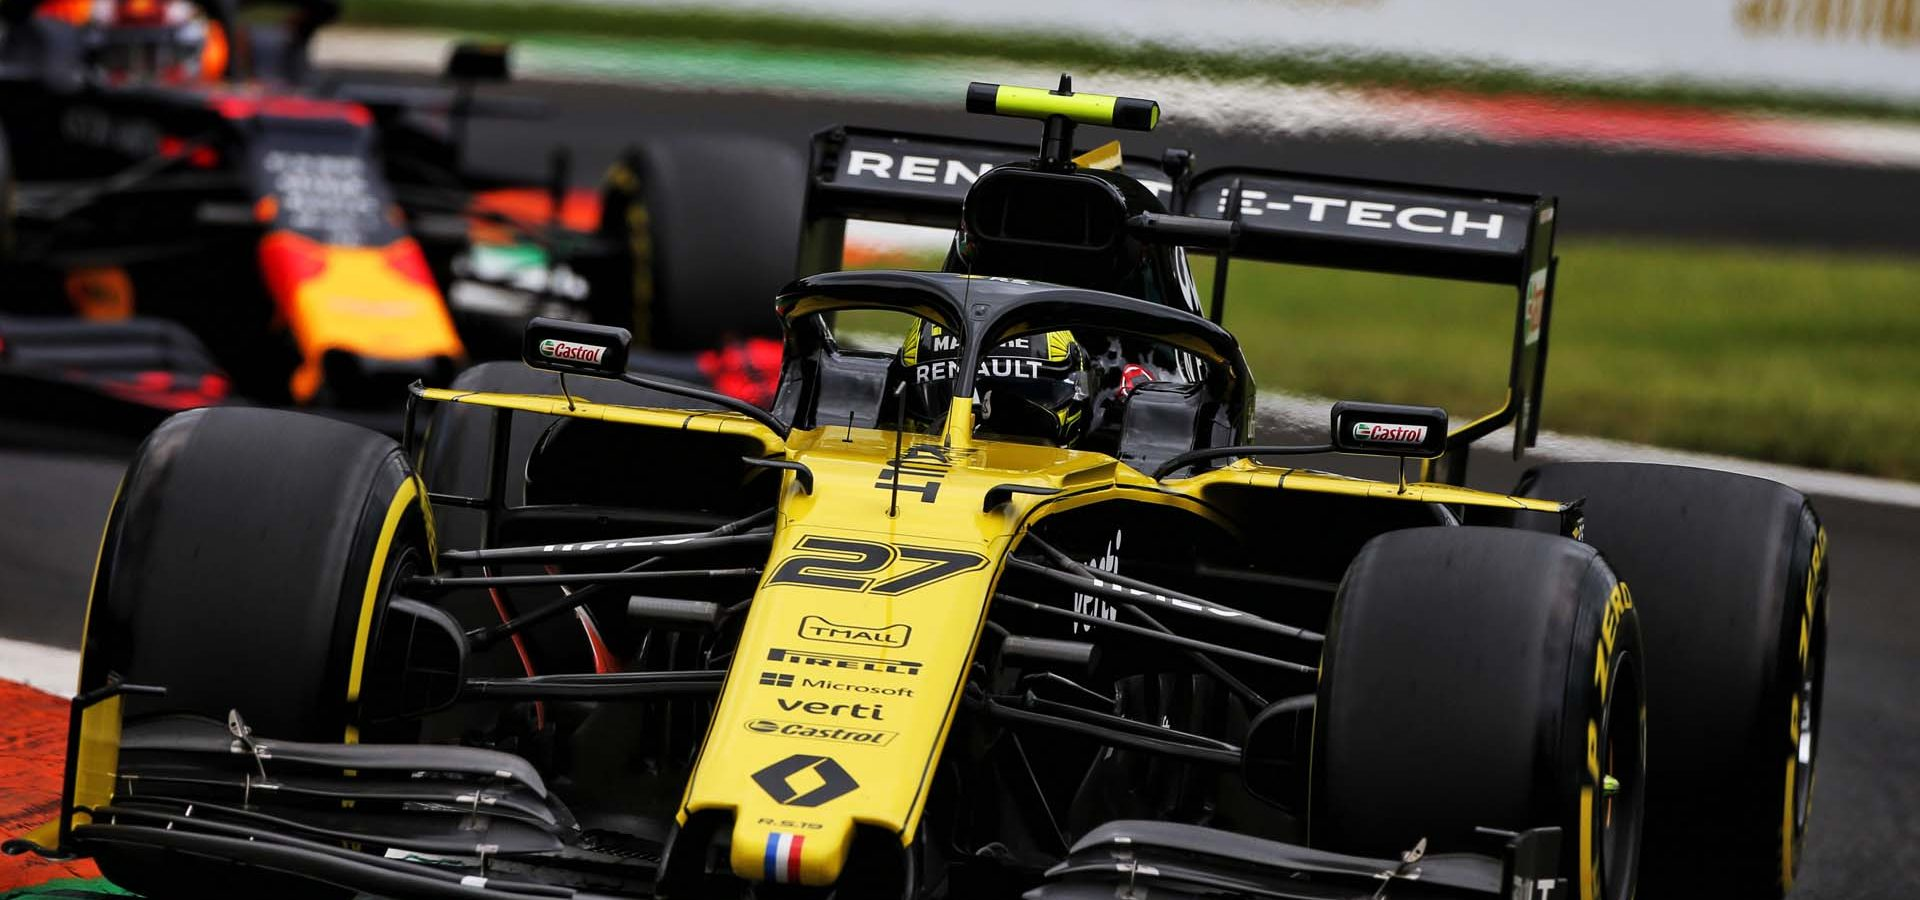 Nico Hülkenberg (GER) Renault F1 Team RS19. Italian Grand Prix, Friday 6th September 2019. Monza Italy. Hülkenberg